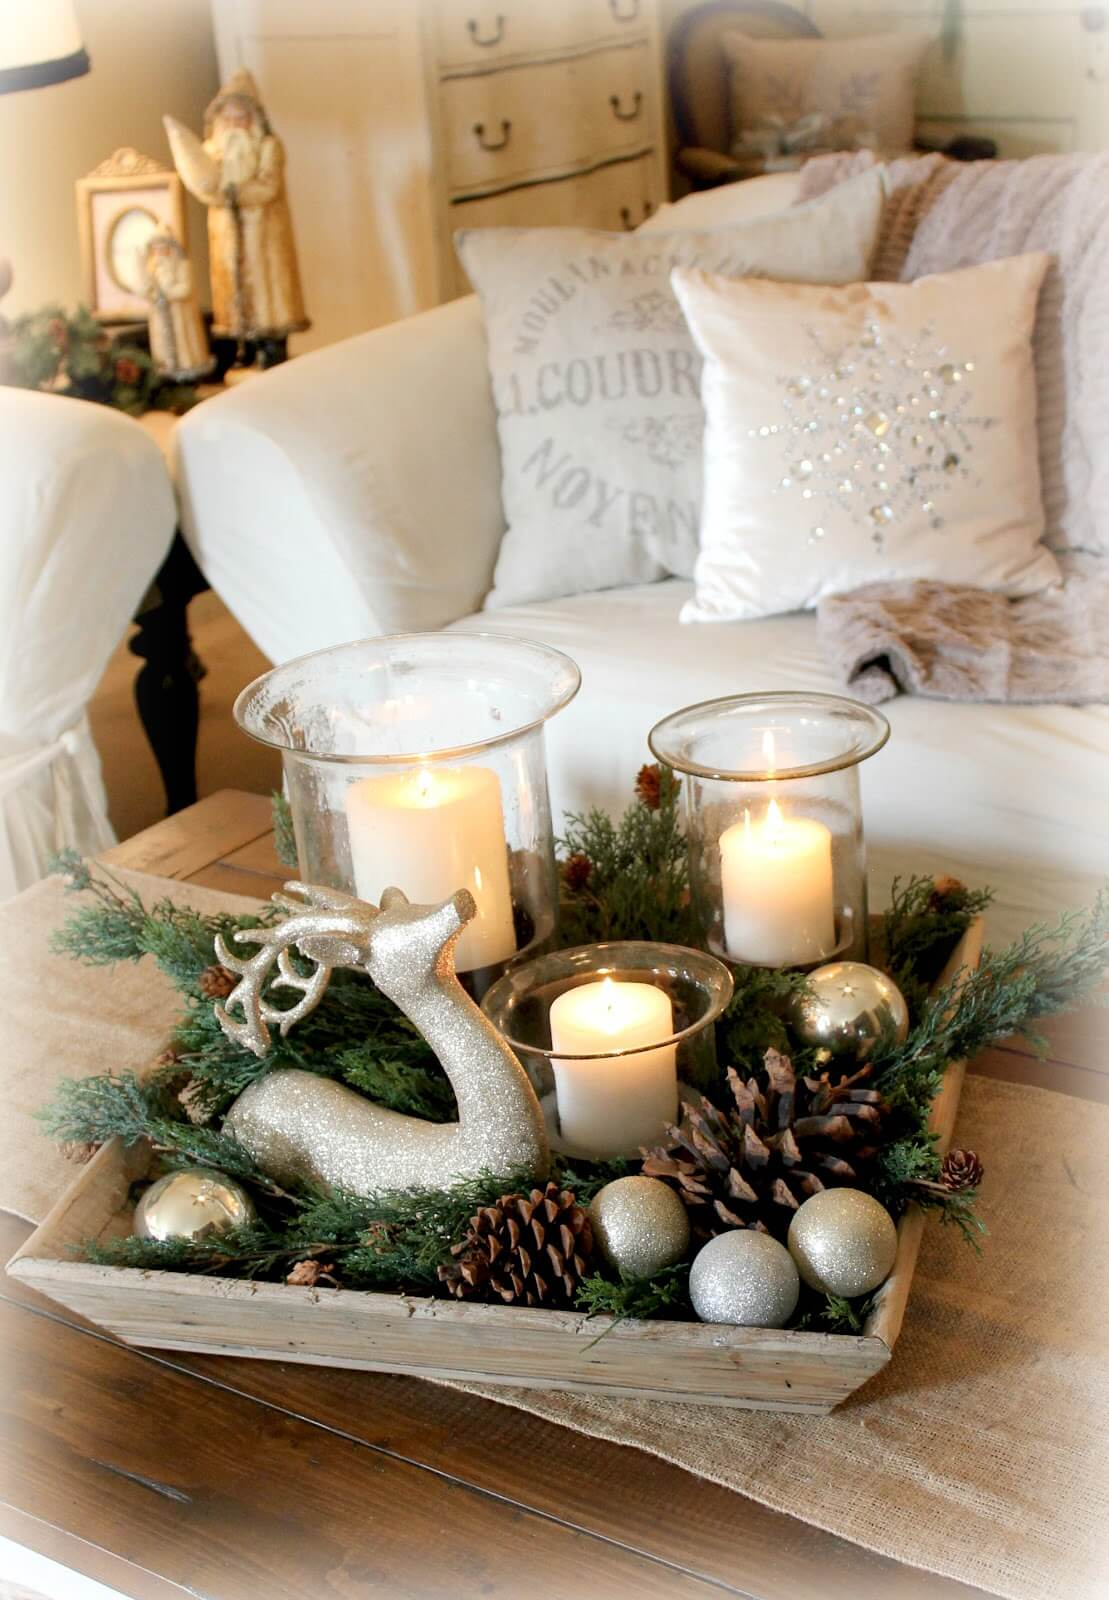 Candles Aglow with Sparkling Woodland Accents